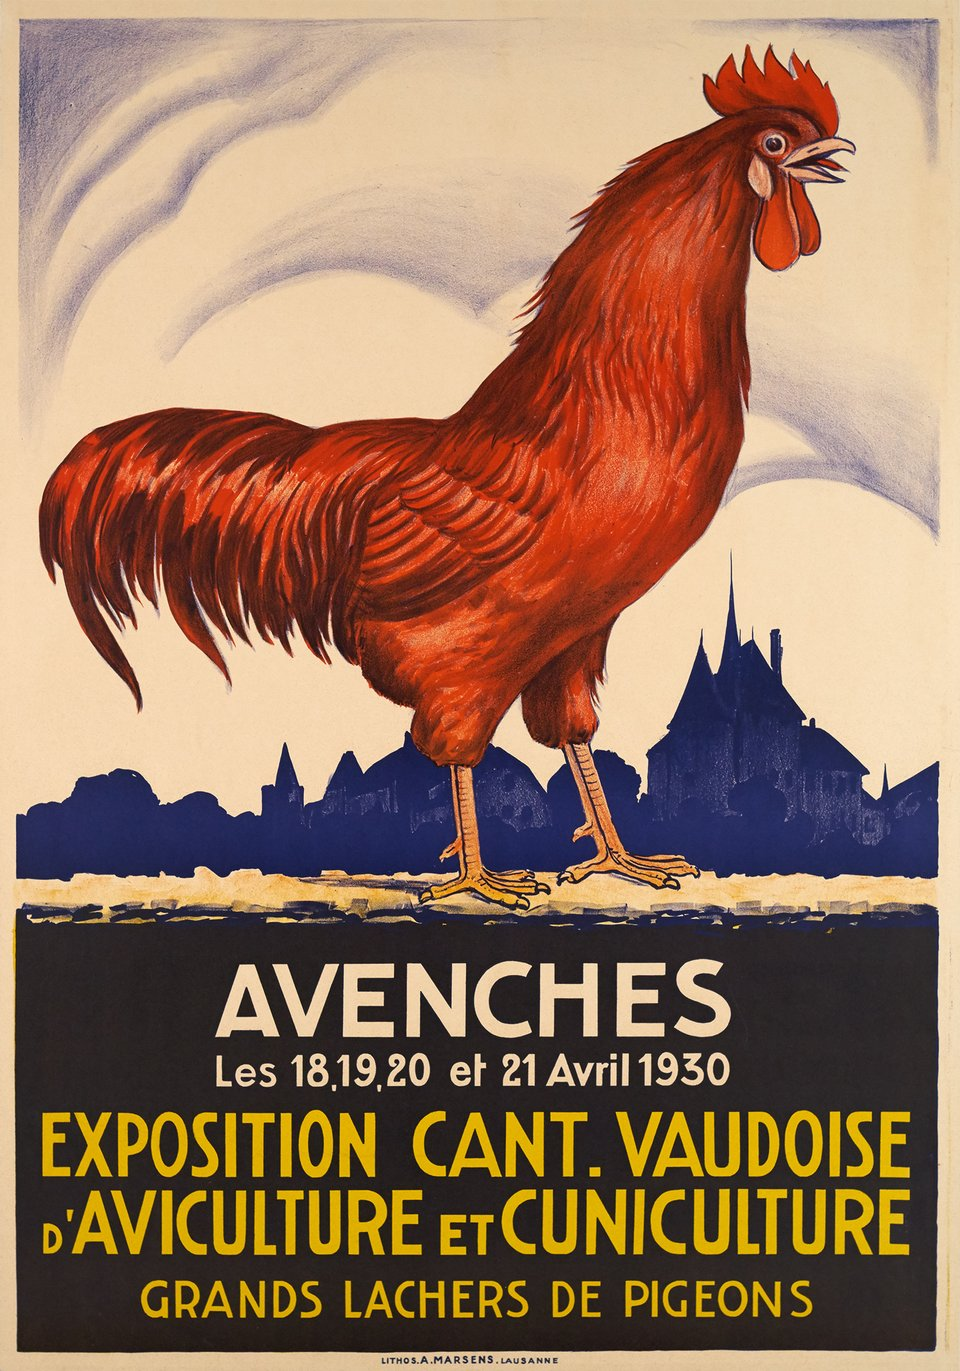 Avenches, Exposition Cant. Vaudoise, Aviculture et Cuniculture – Affiche ancienne –  ANONYME – 1930